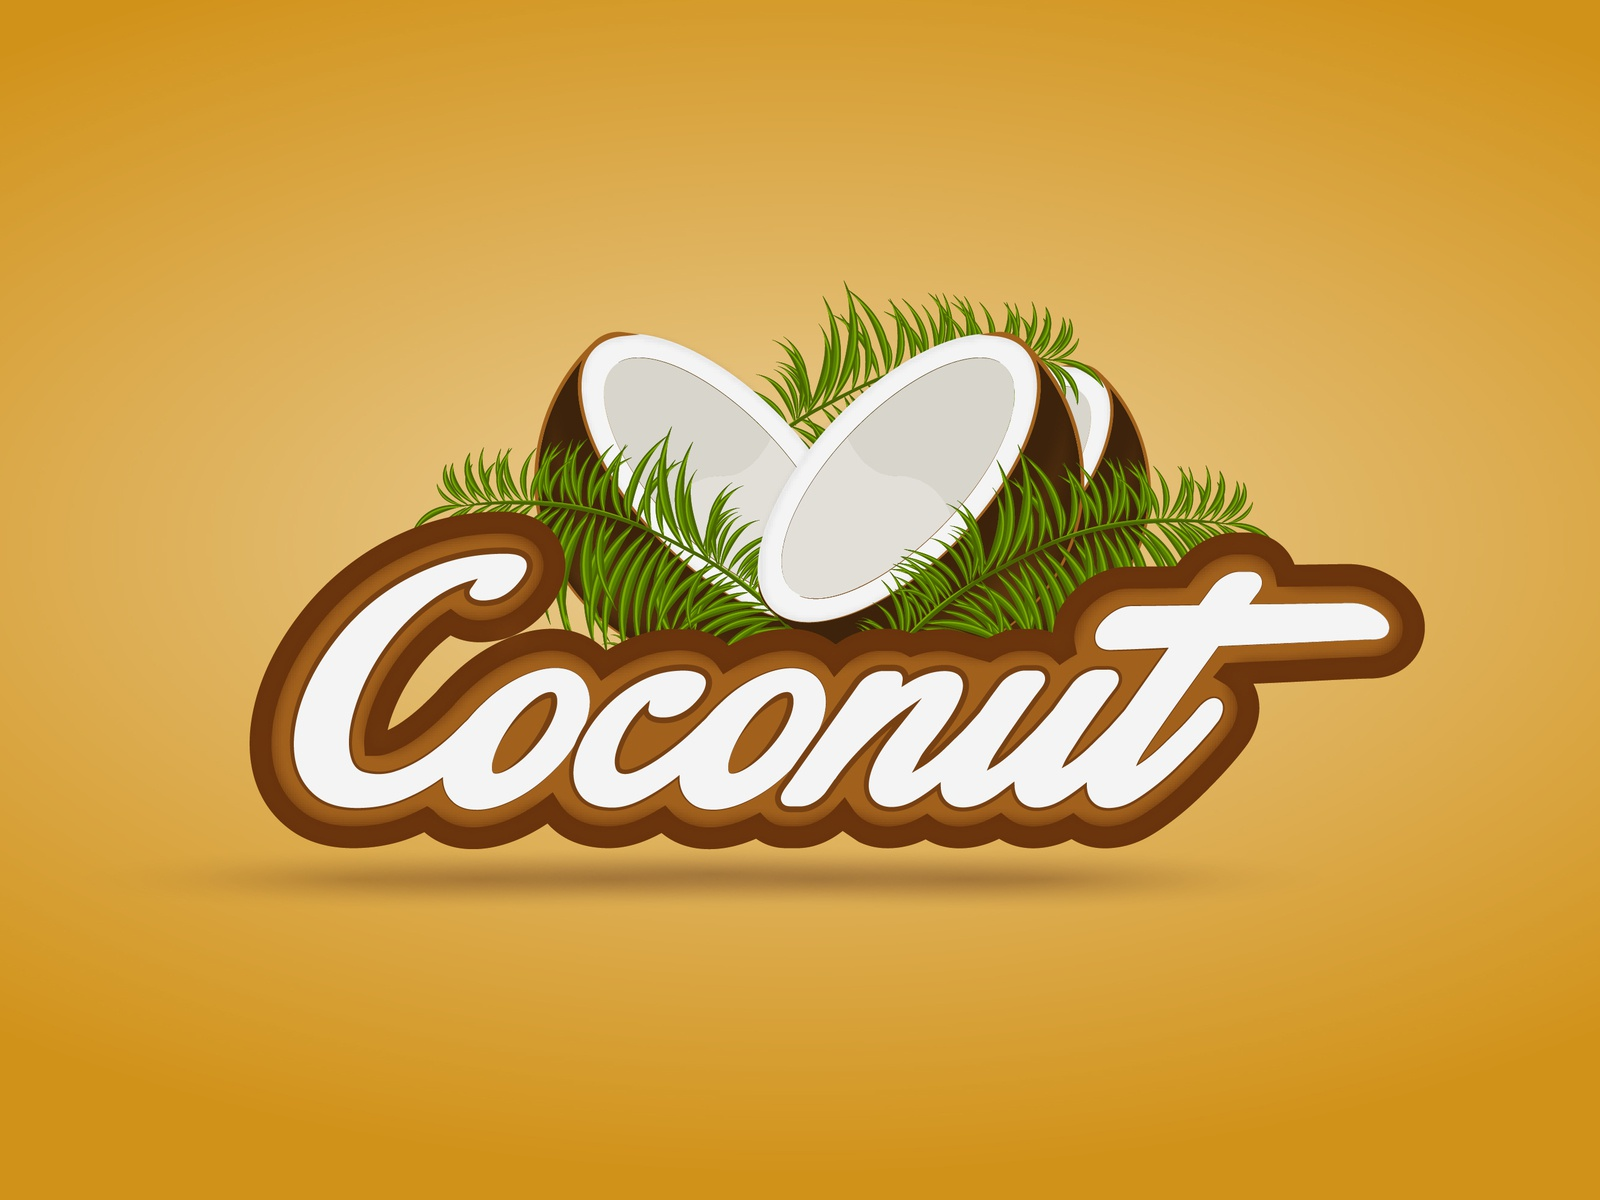 Coconut Logo ad flyer creative logo ad campaign typography ad agency creations ad banner website minimal illustration mascot brand vector illustrator identity branding designing design logo